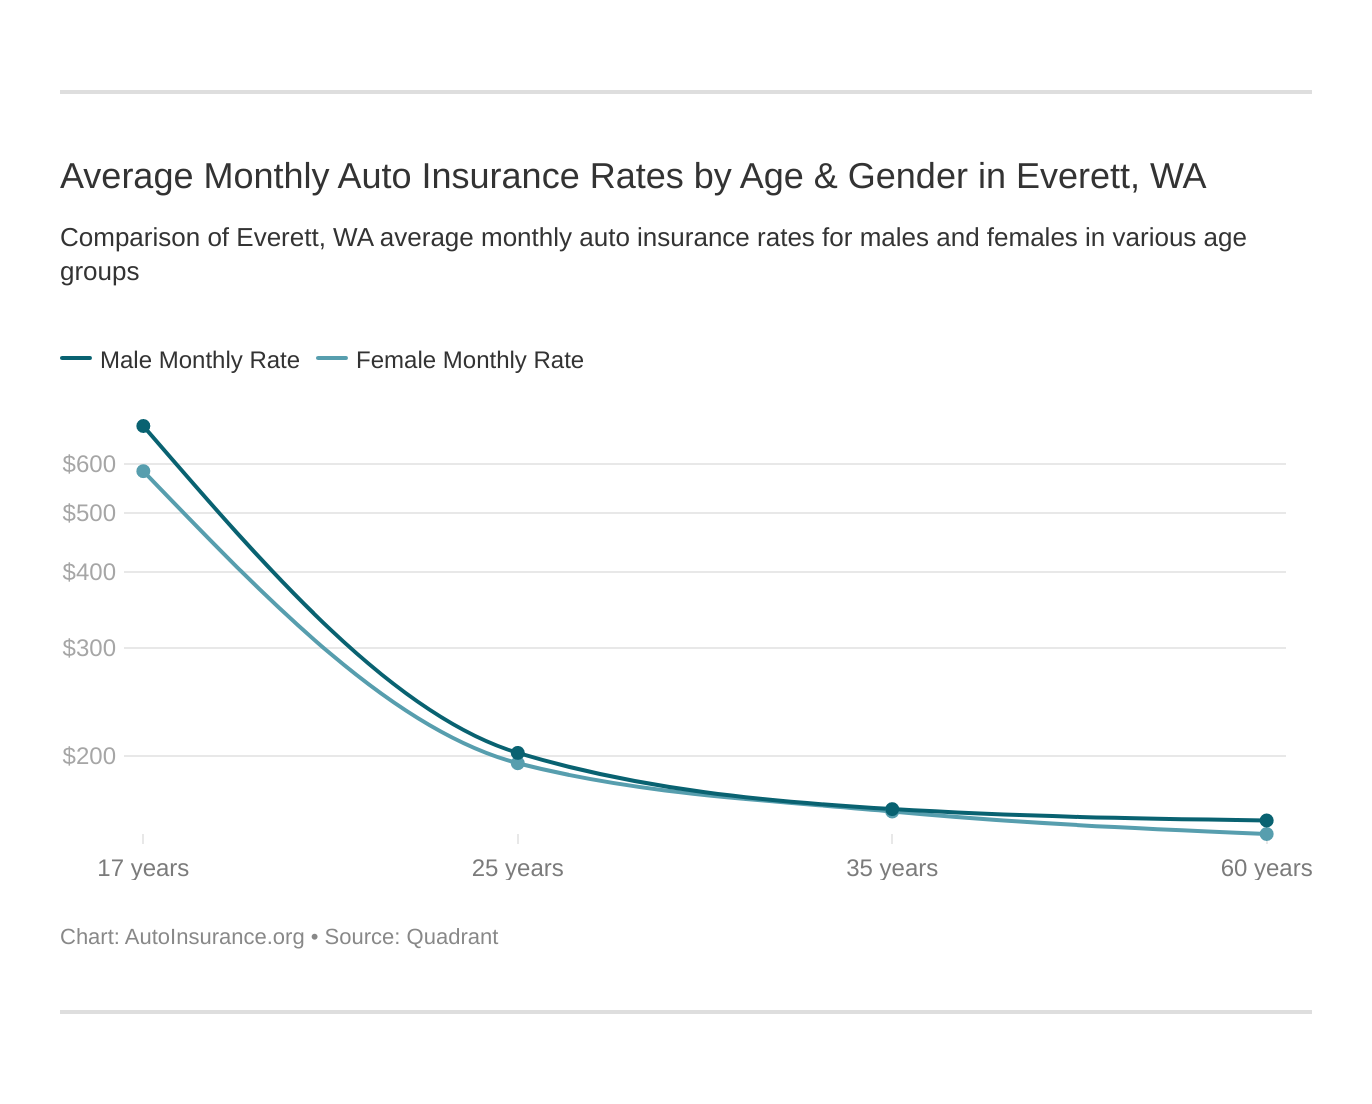 Average Monthly Auto Insurance Rates by Age & Gender in Everett, WA